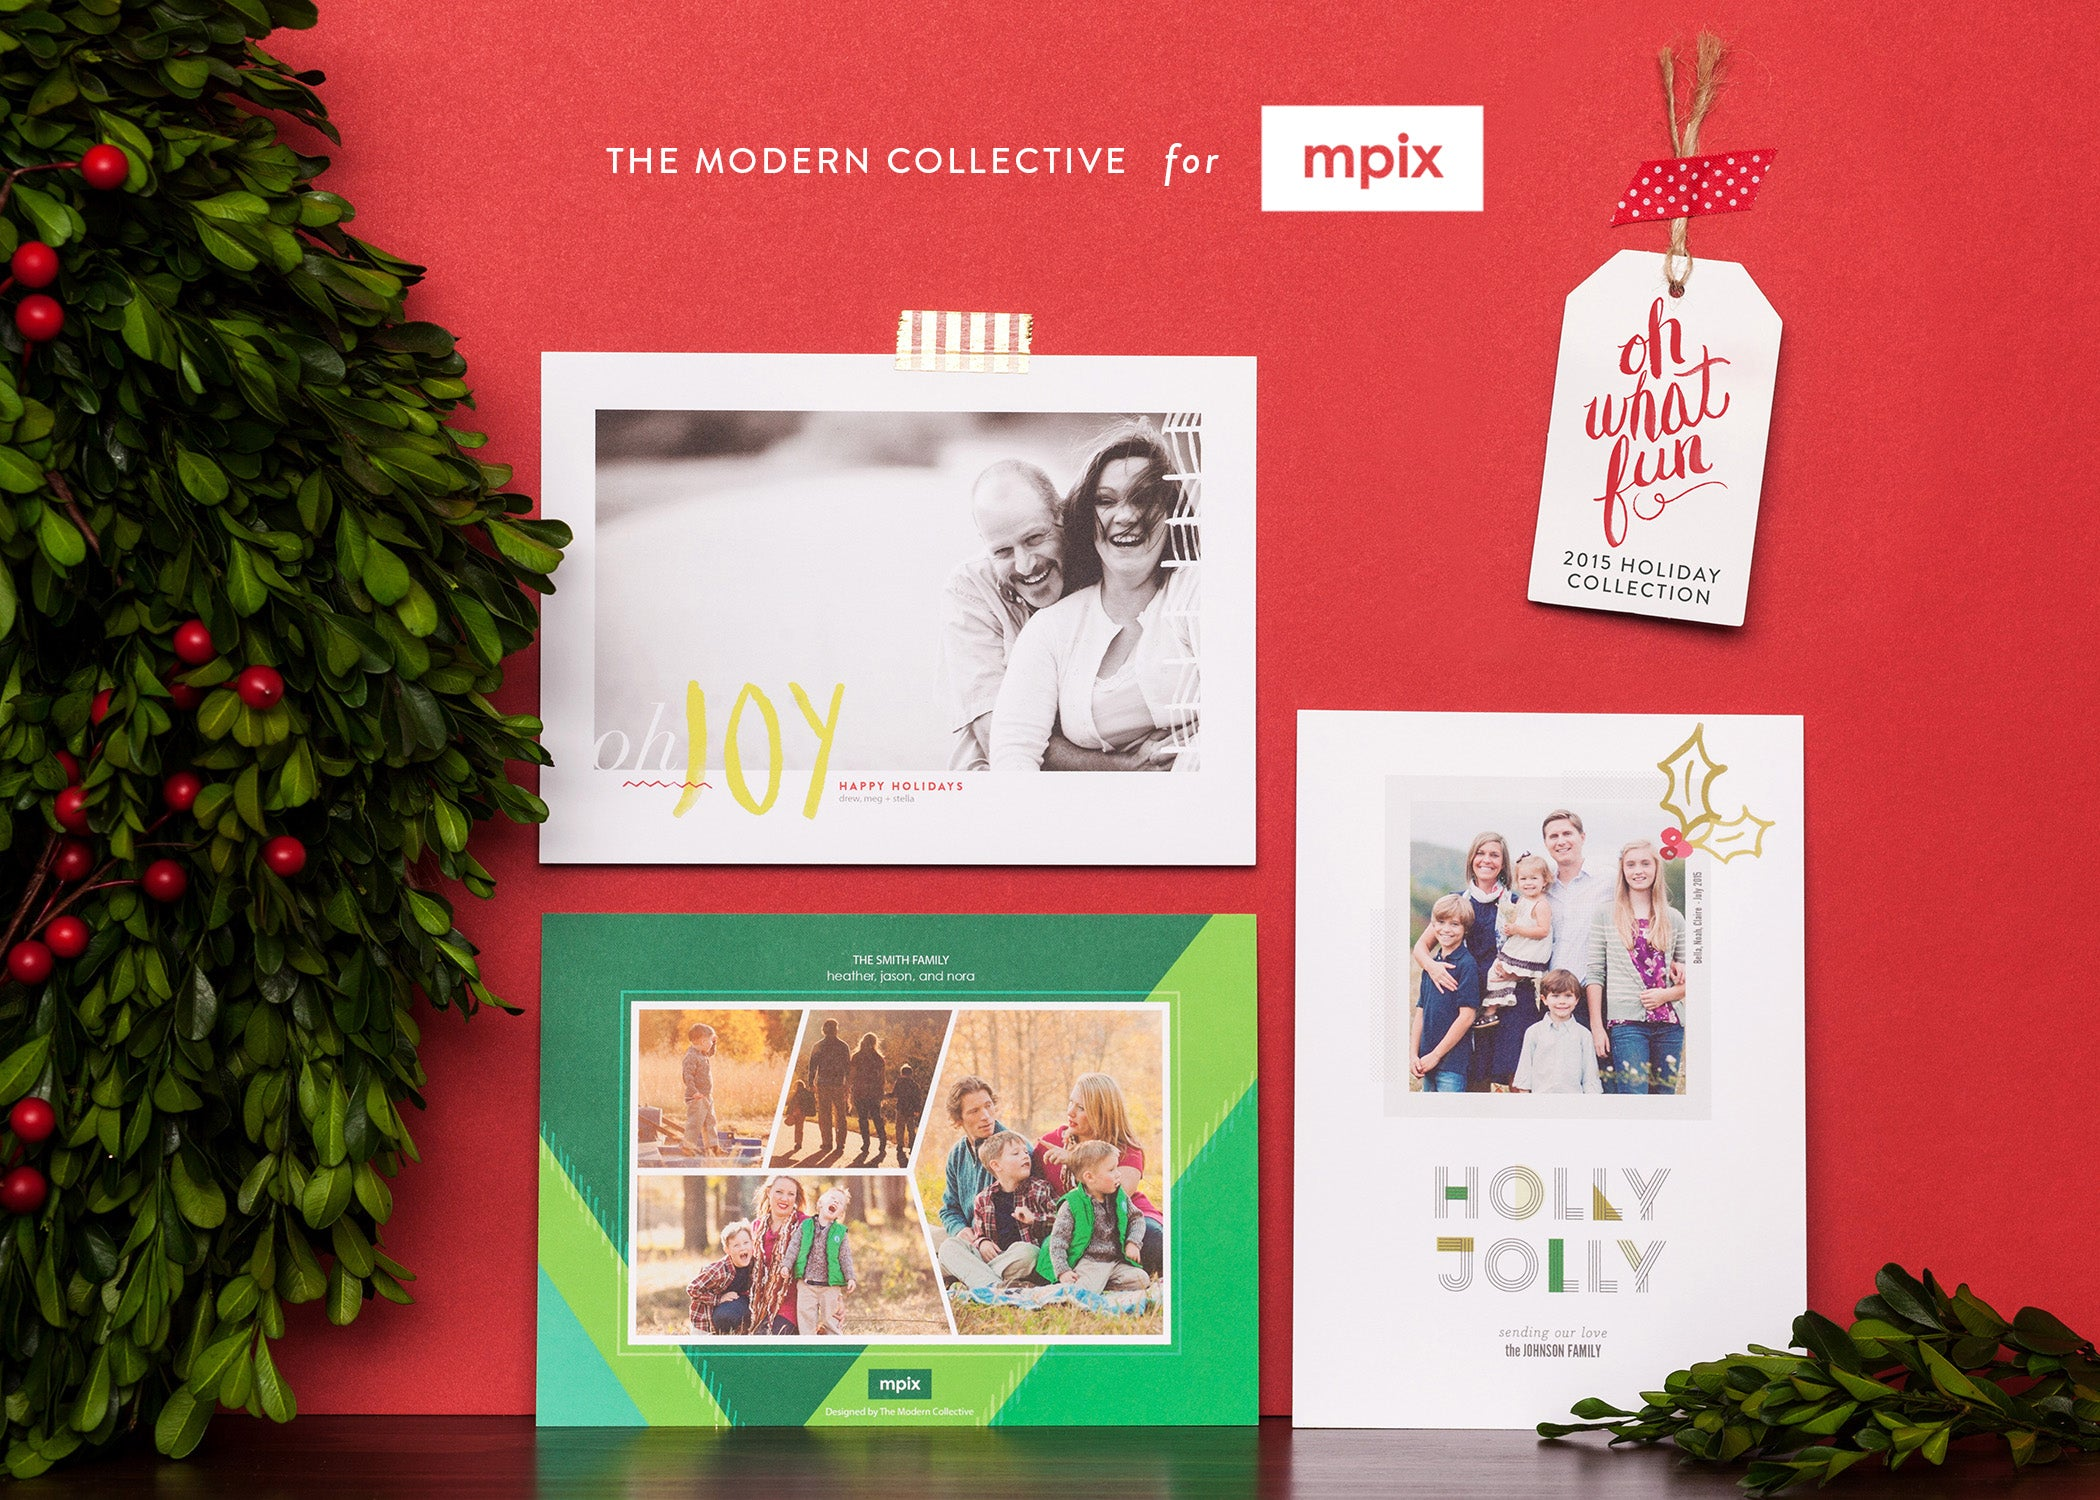 The Modern Collective Holiday Collection for Mpix.com